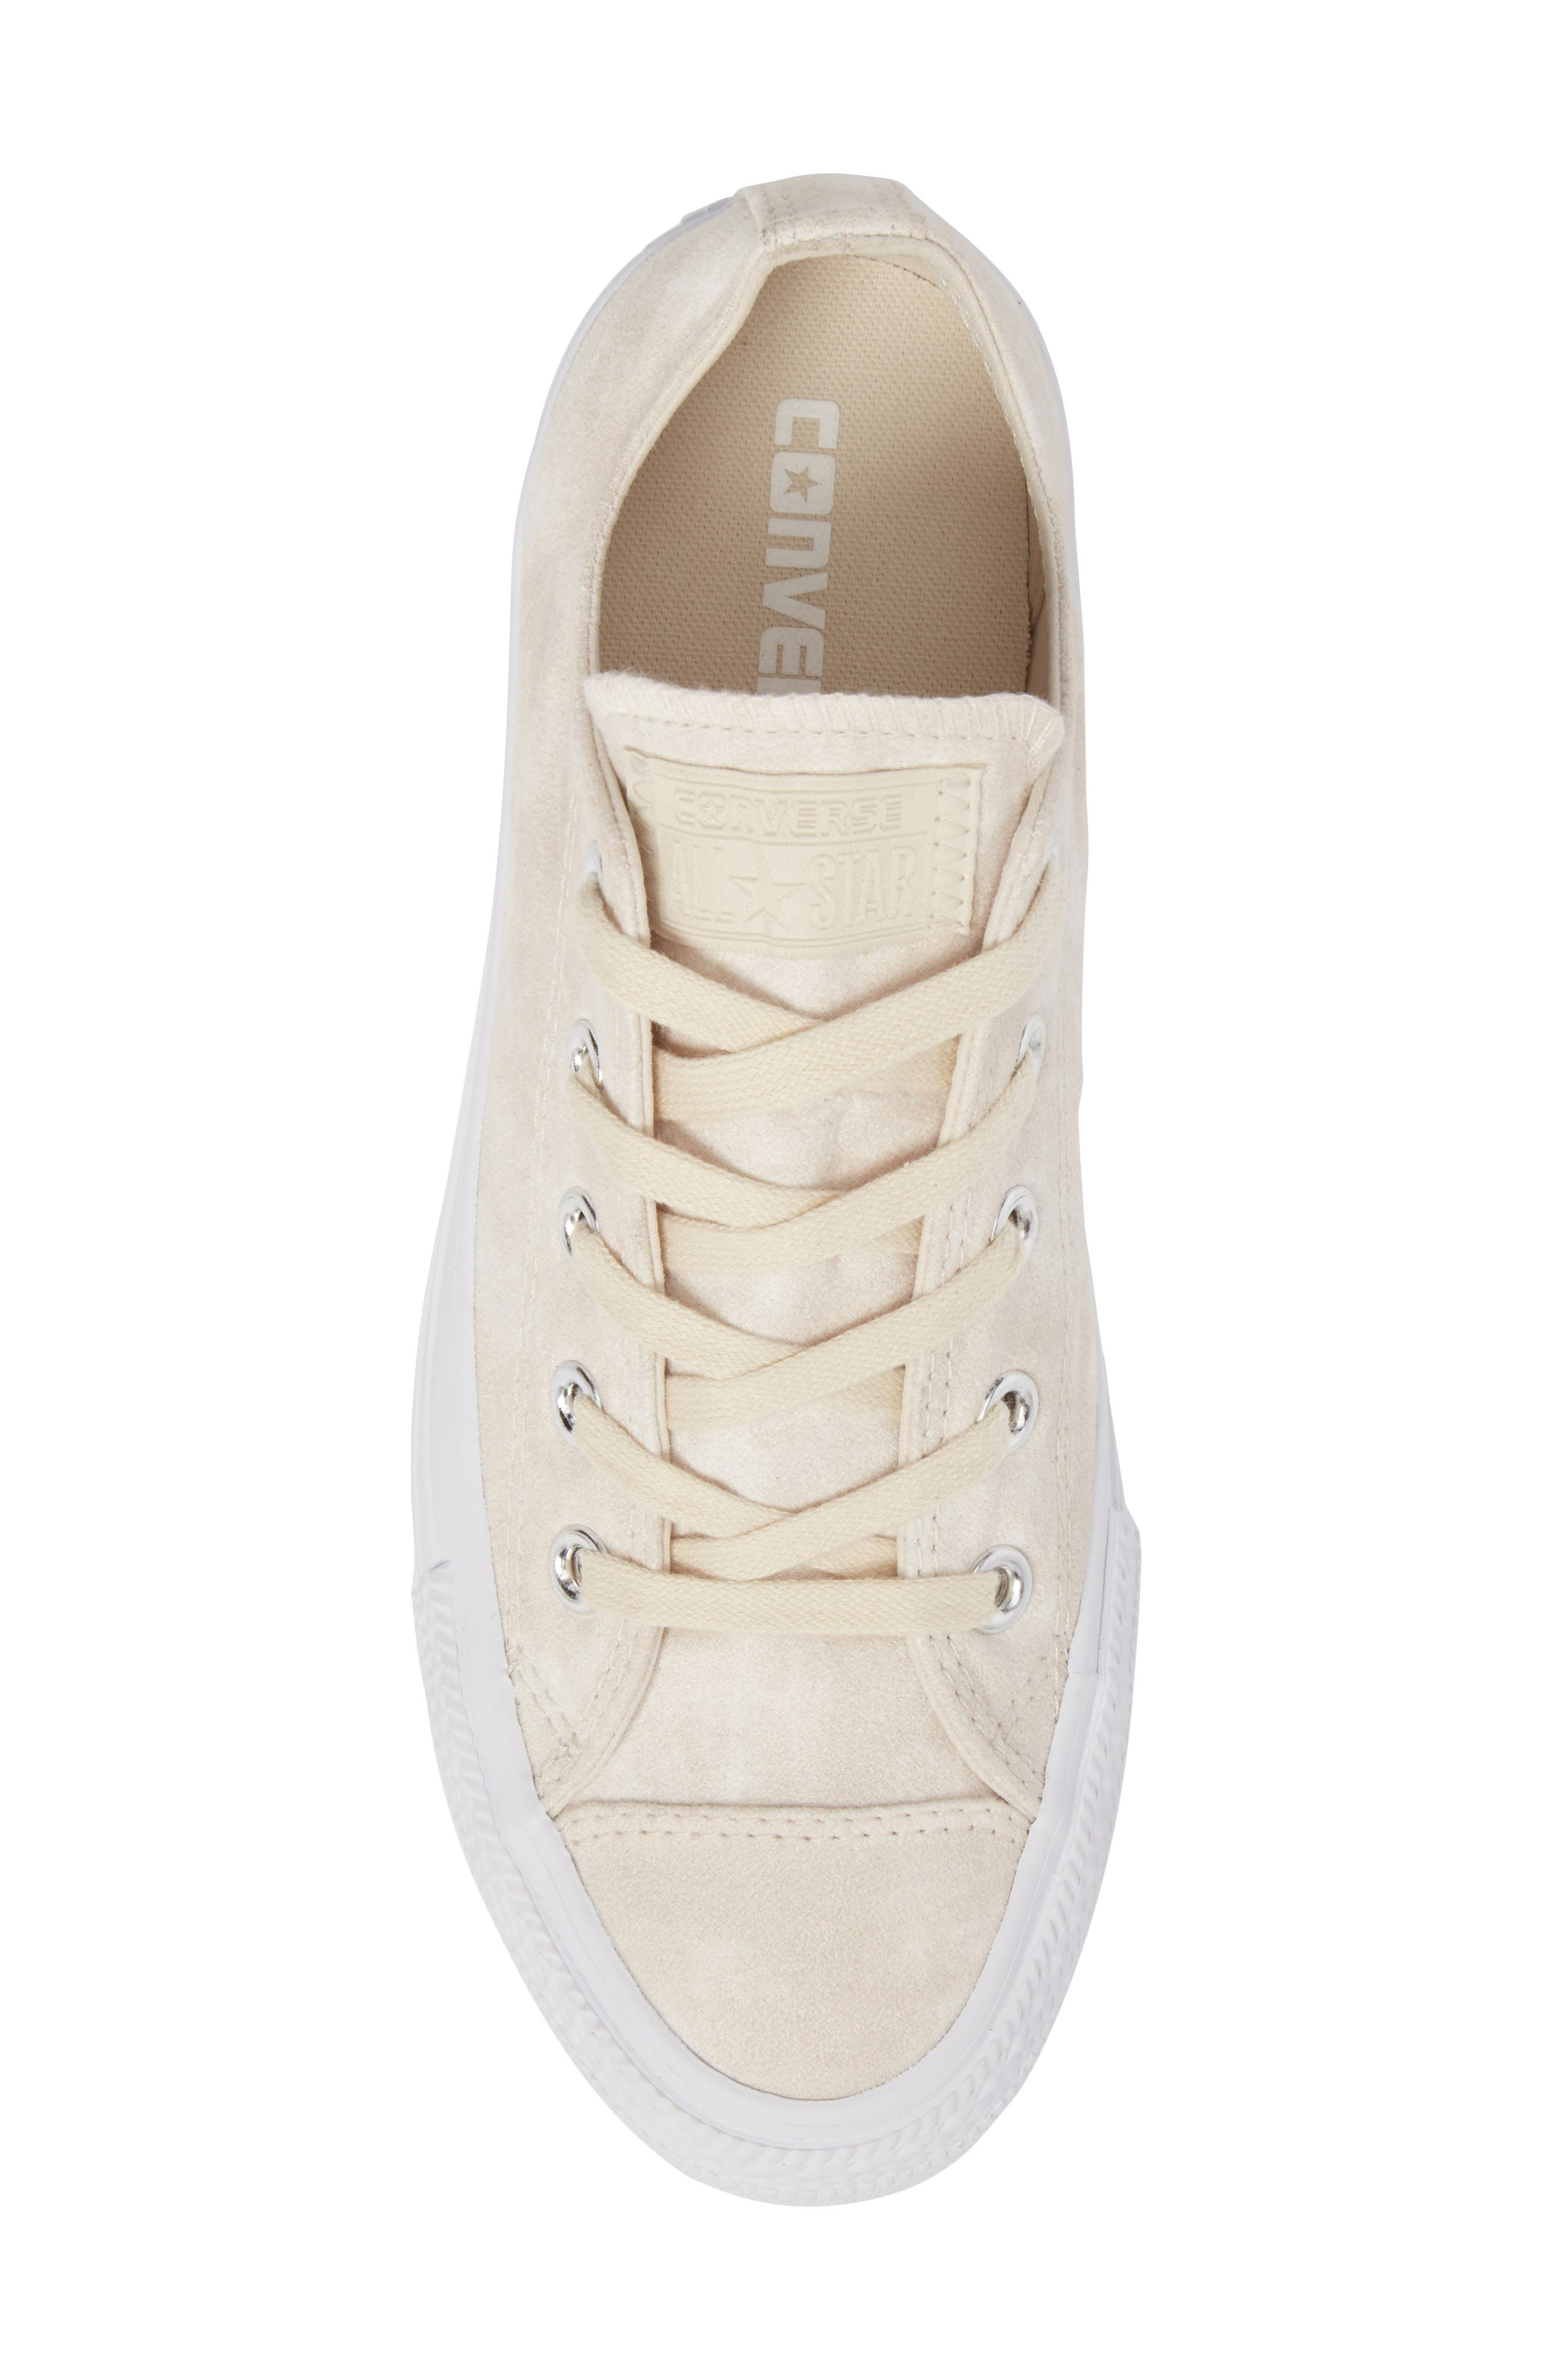 Chuck Taylor<sup>®</sup> All Star<sup>®</sup> Peached Low Top Sneaker,                             Alternate thumbnail 5, color,                             248